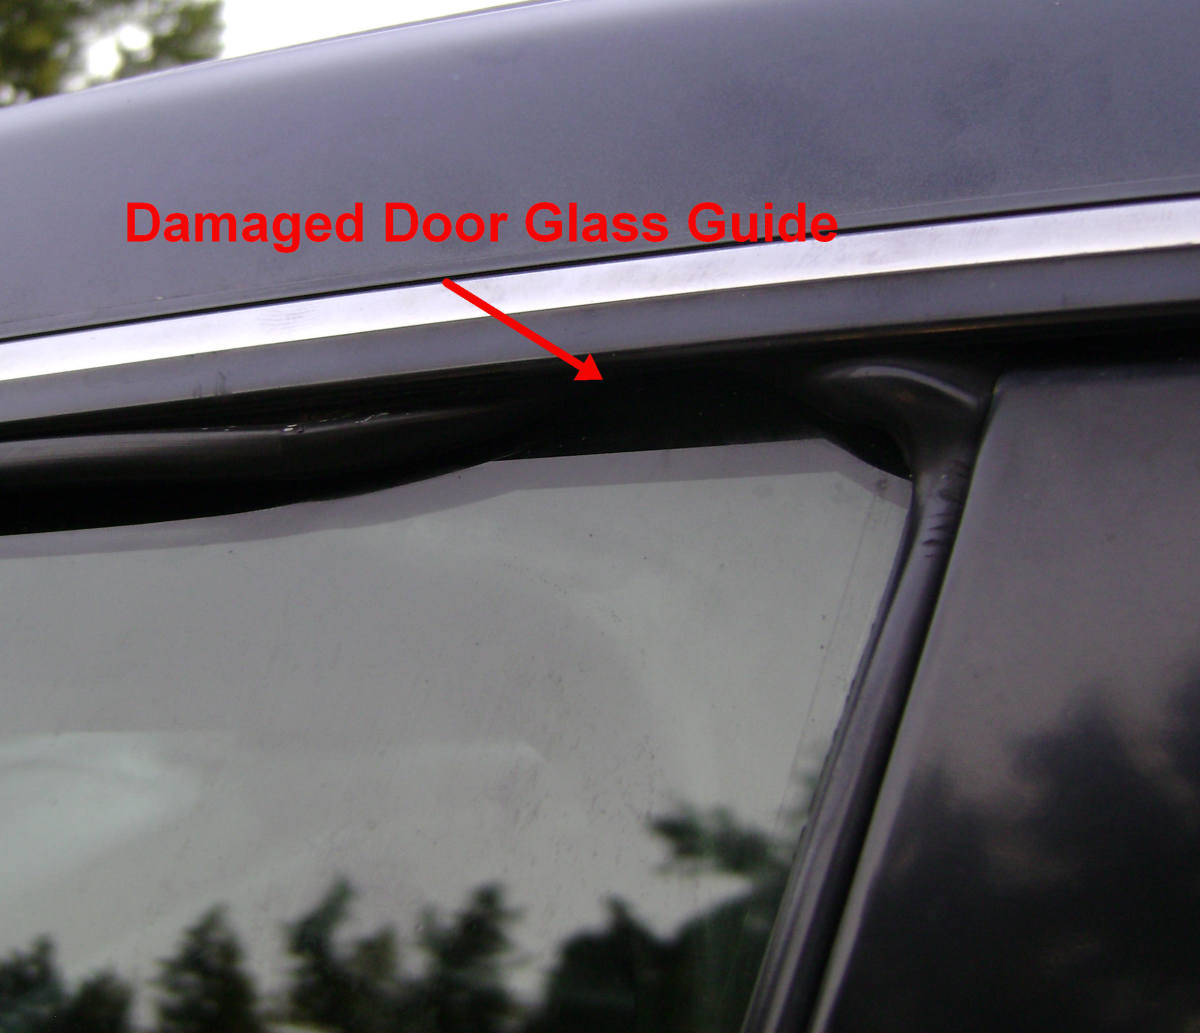 On this Camry the rubber door glass guide is damaged and needs replacing.